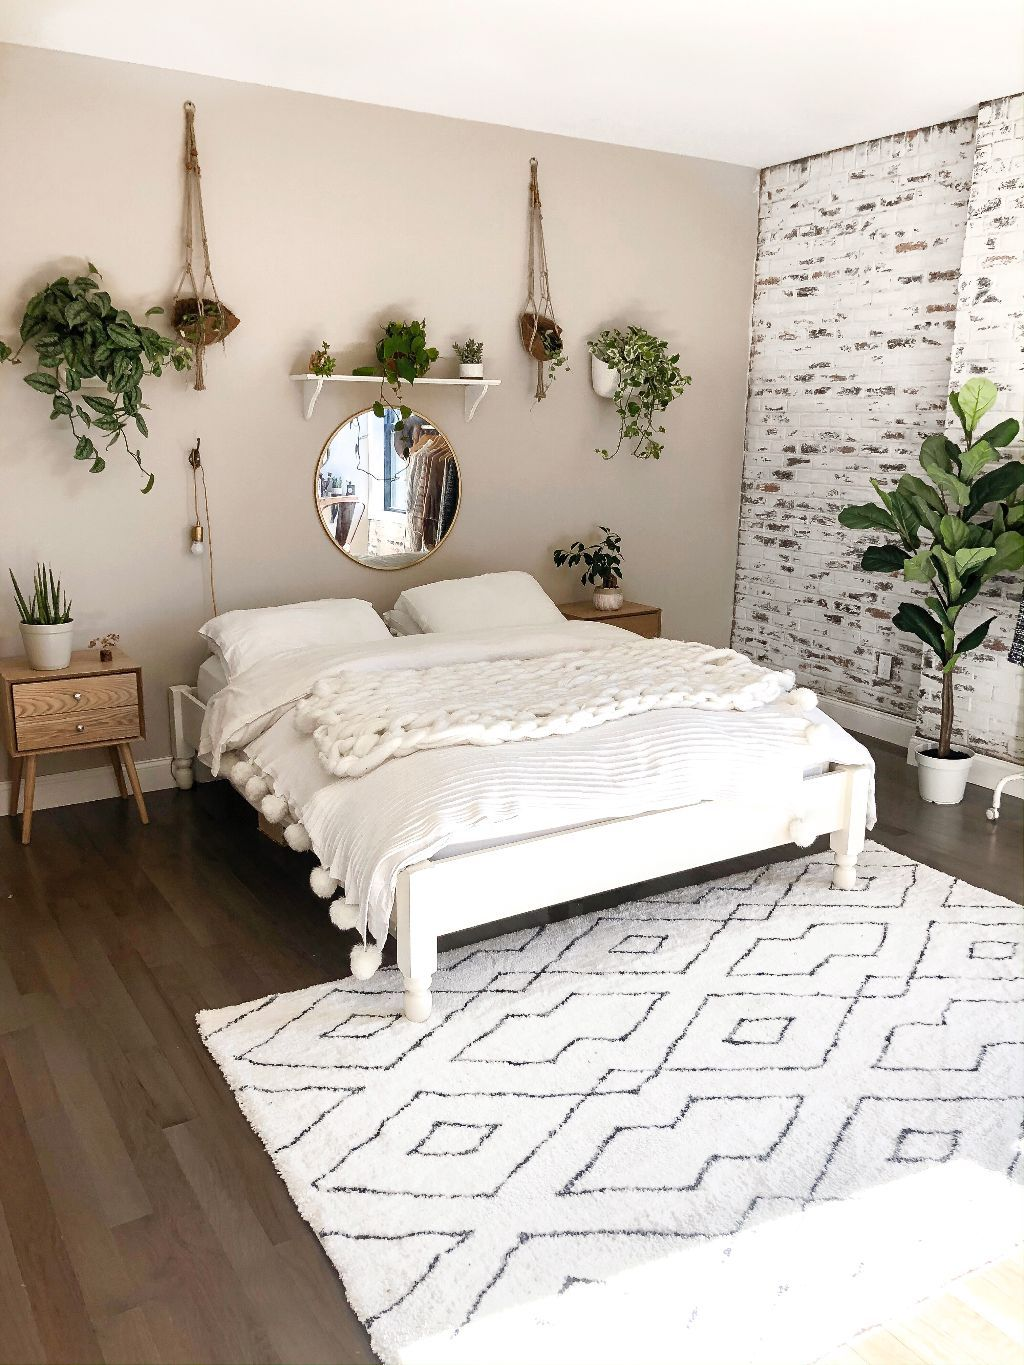 My Boho Minimalist Bedroom Reveal #bedroomgoals